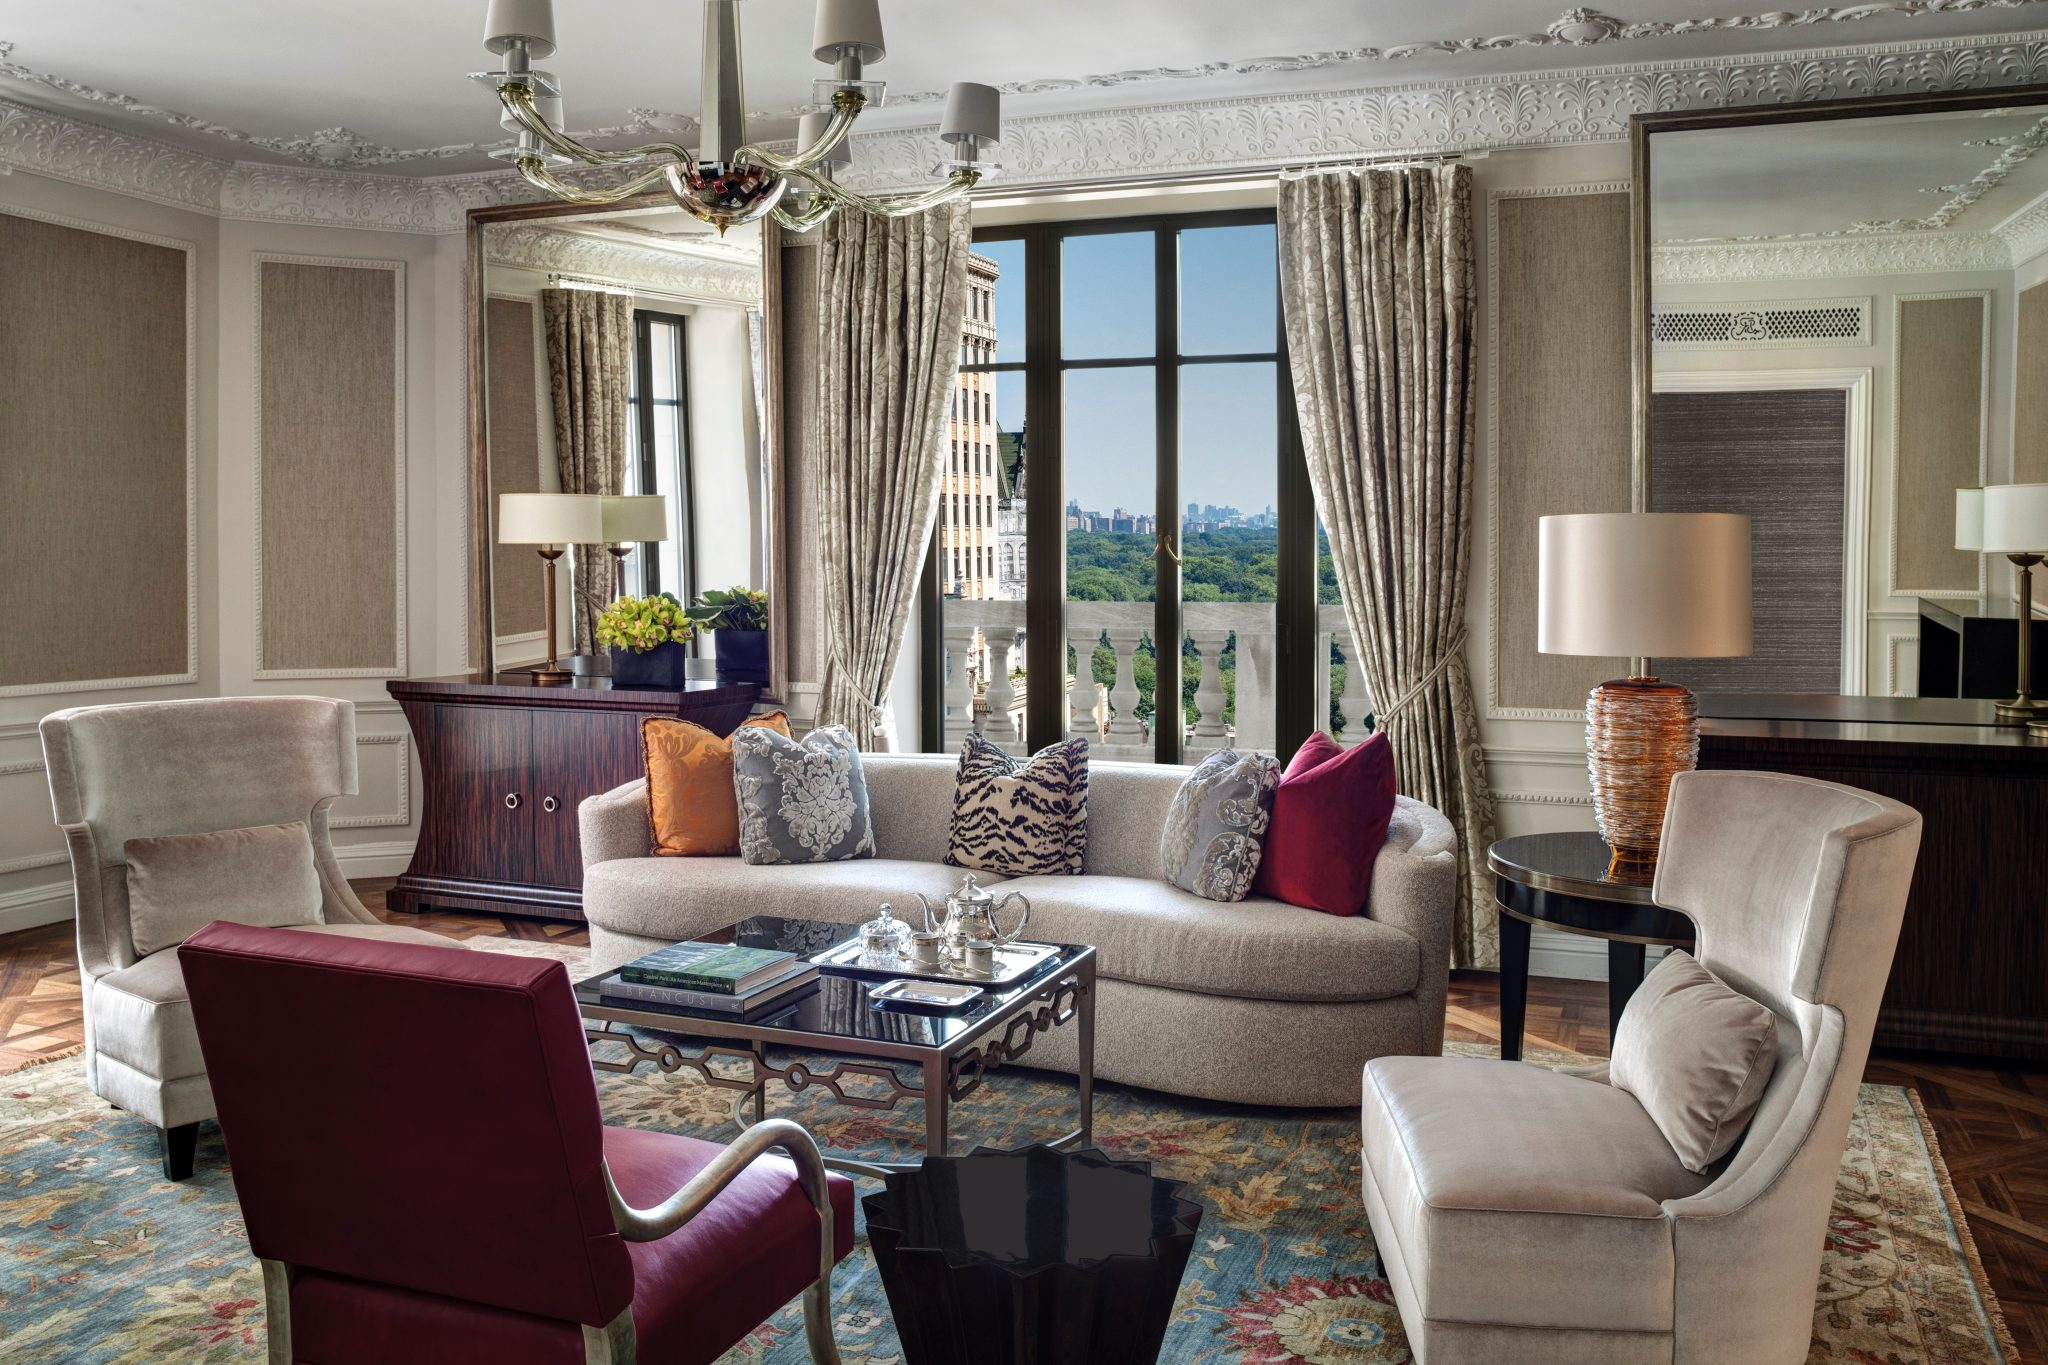 10 Most Expensive Hotel Suites in the World